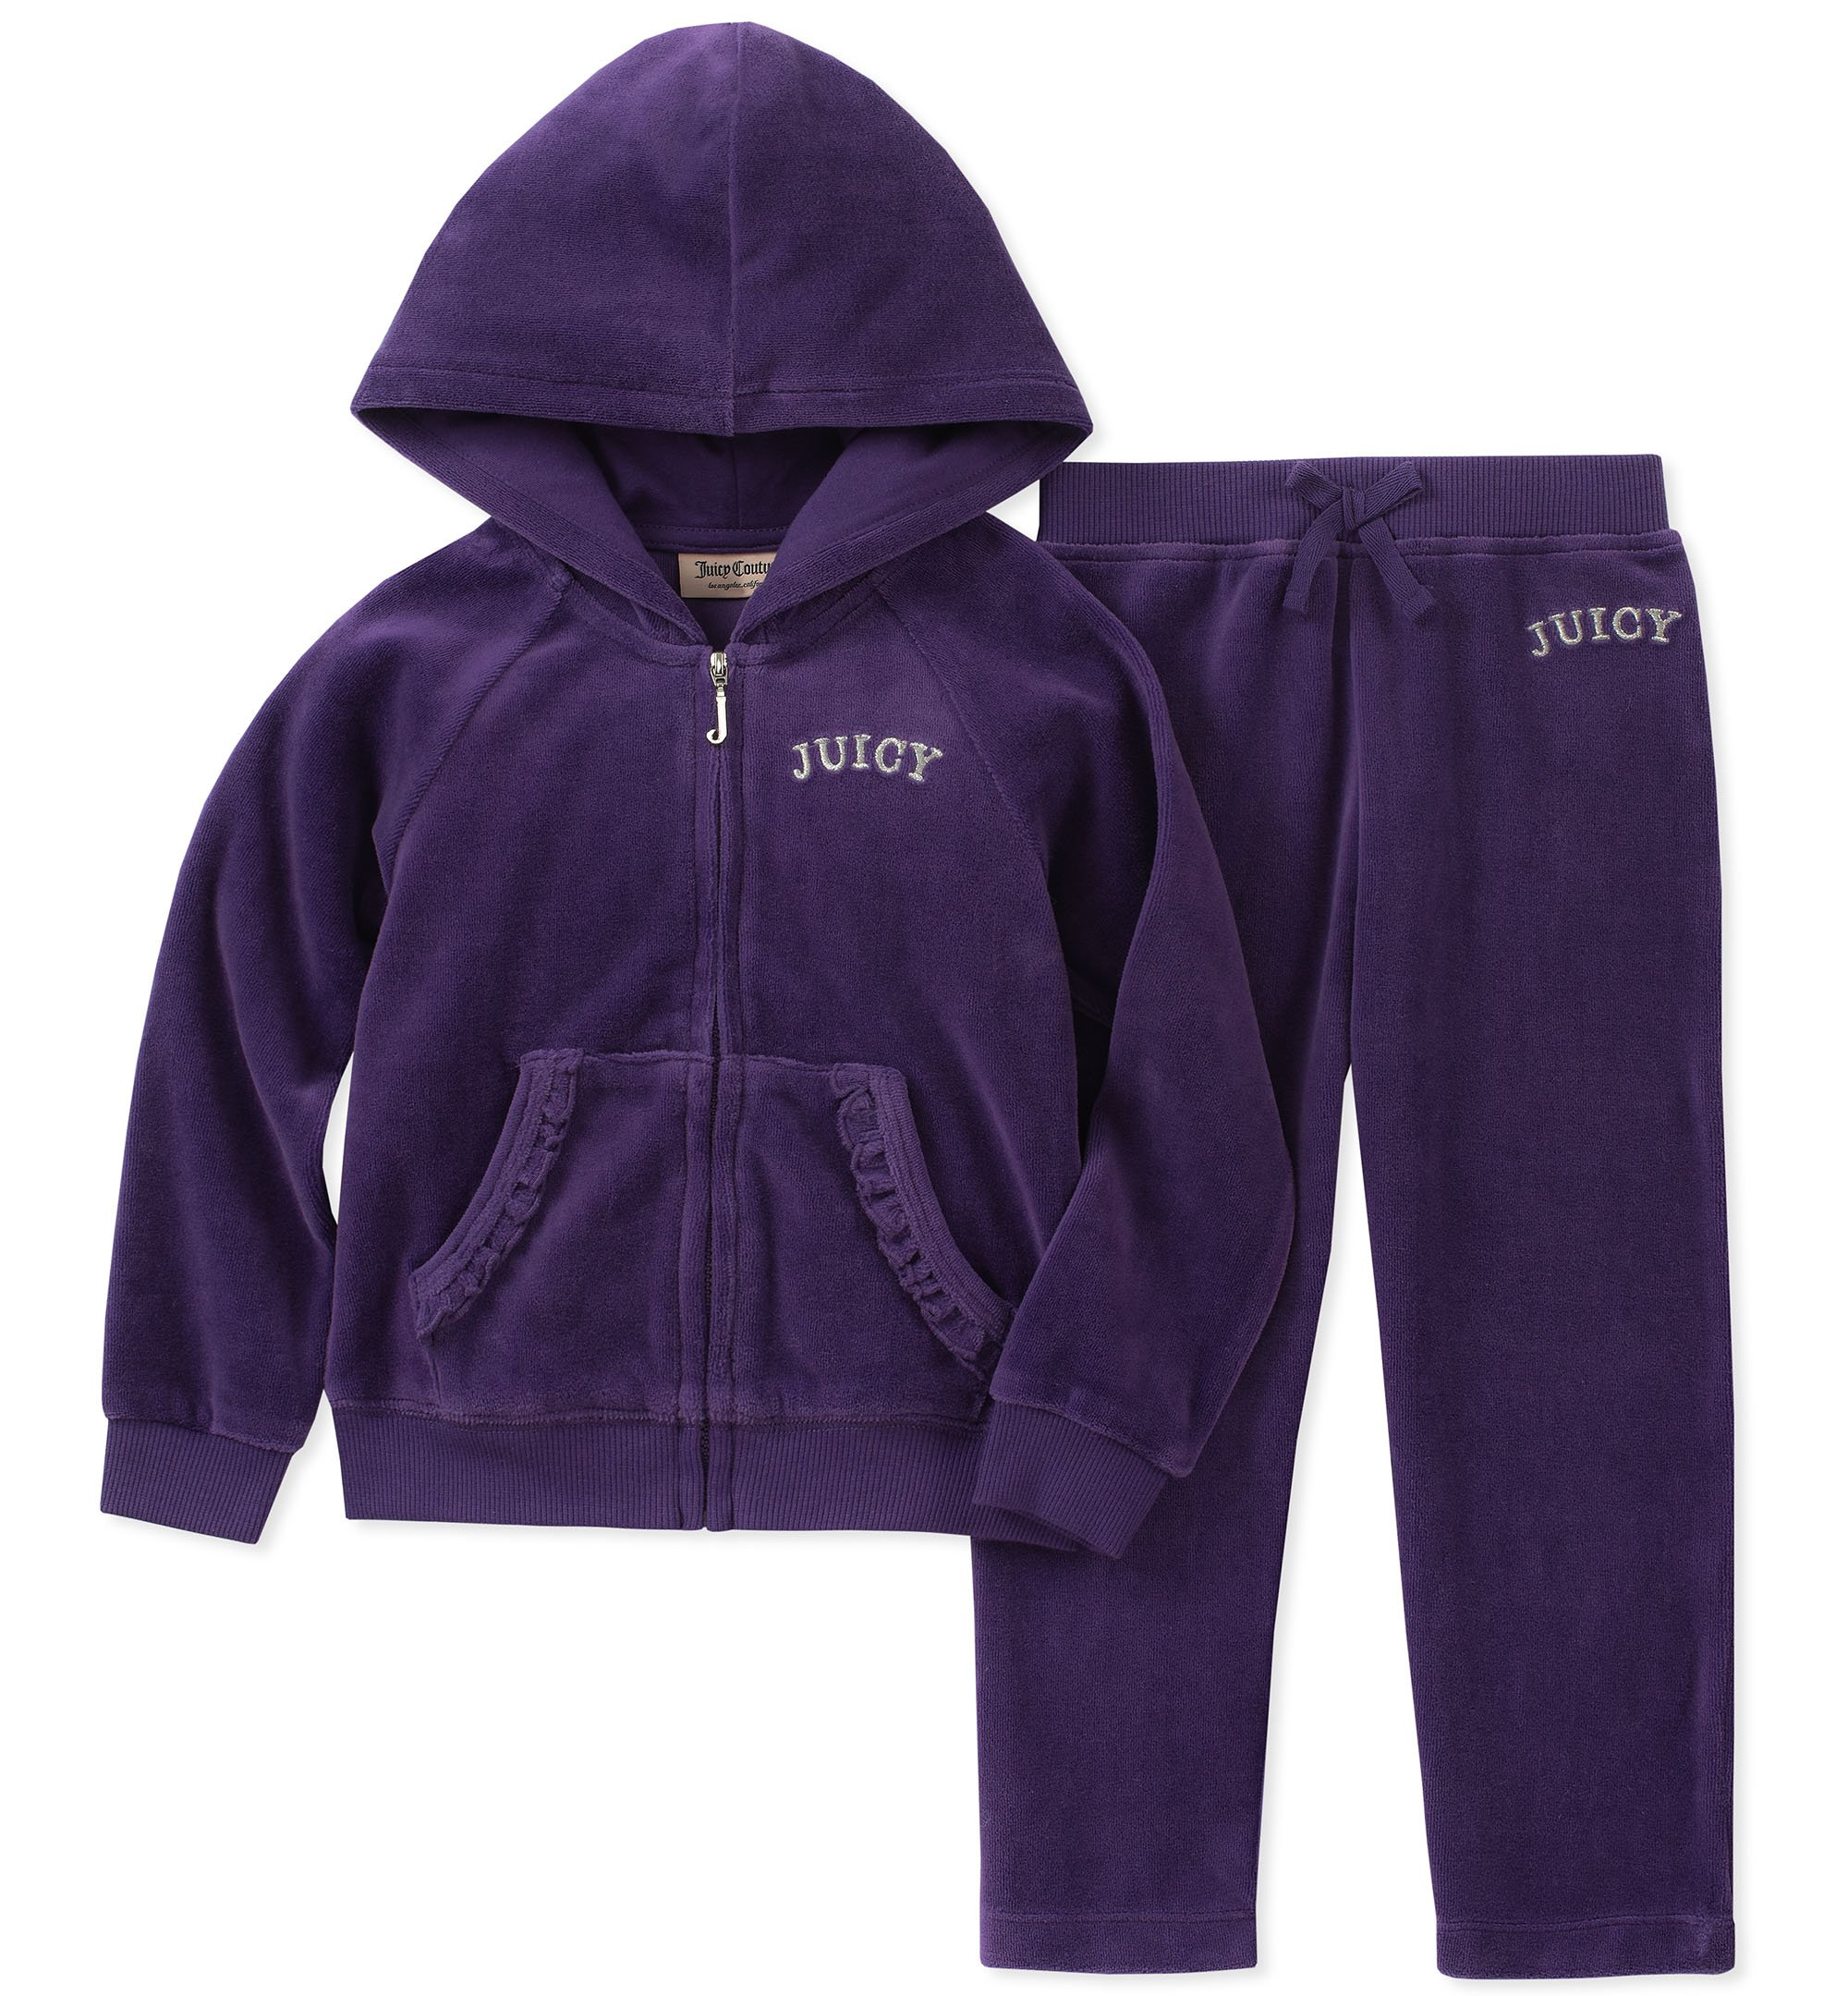 Juicy Couture Girls' 2 Pieces Jog Set-Velour